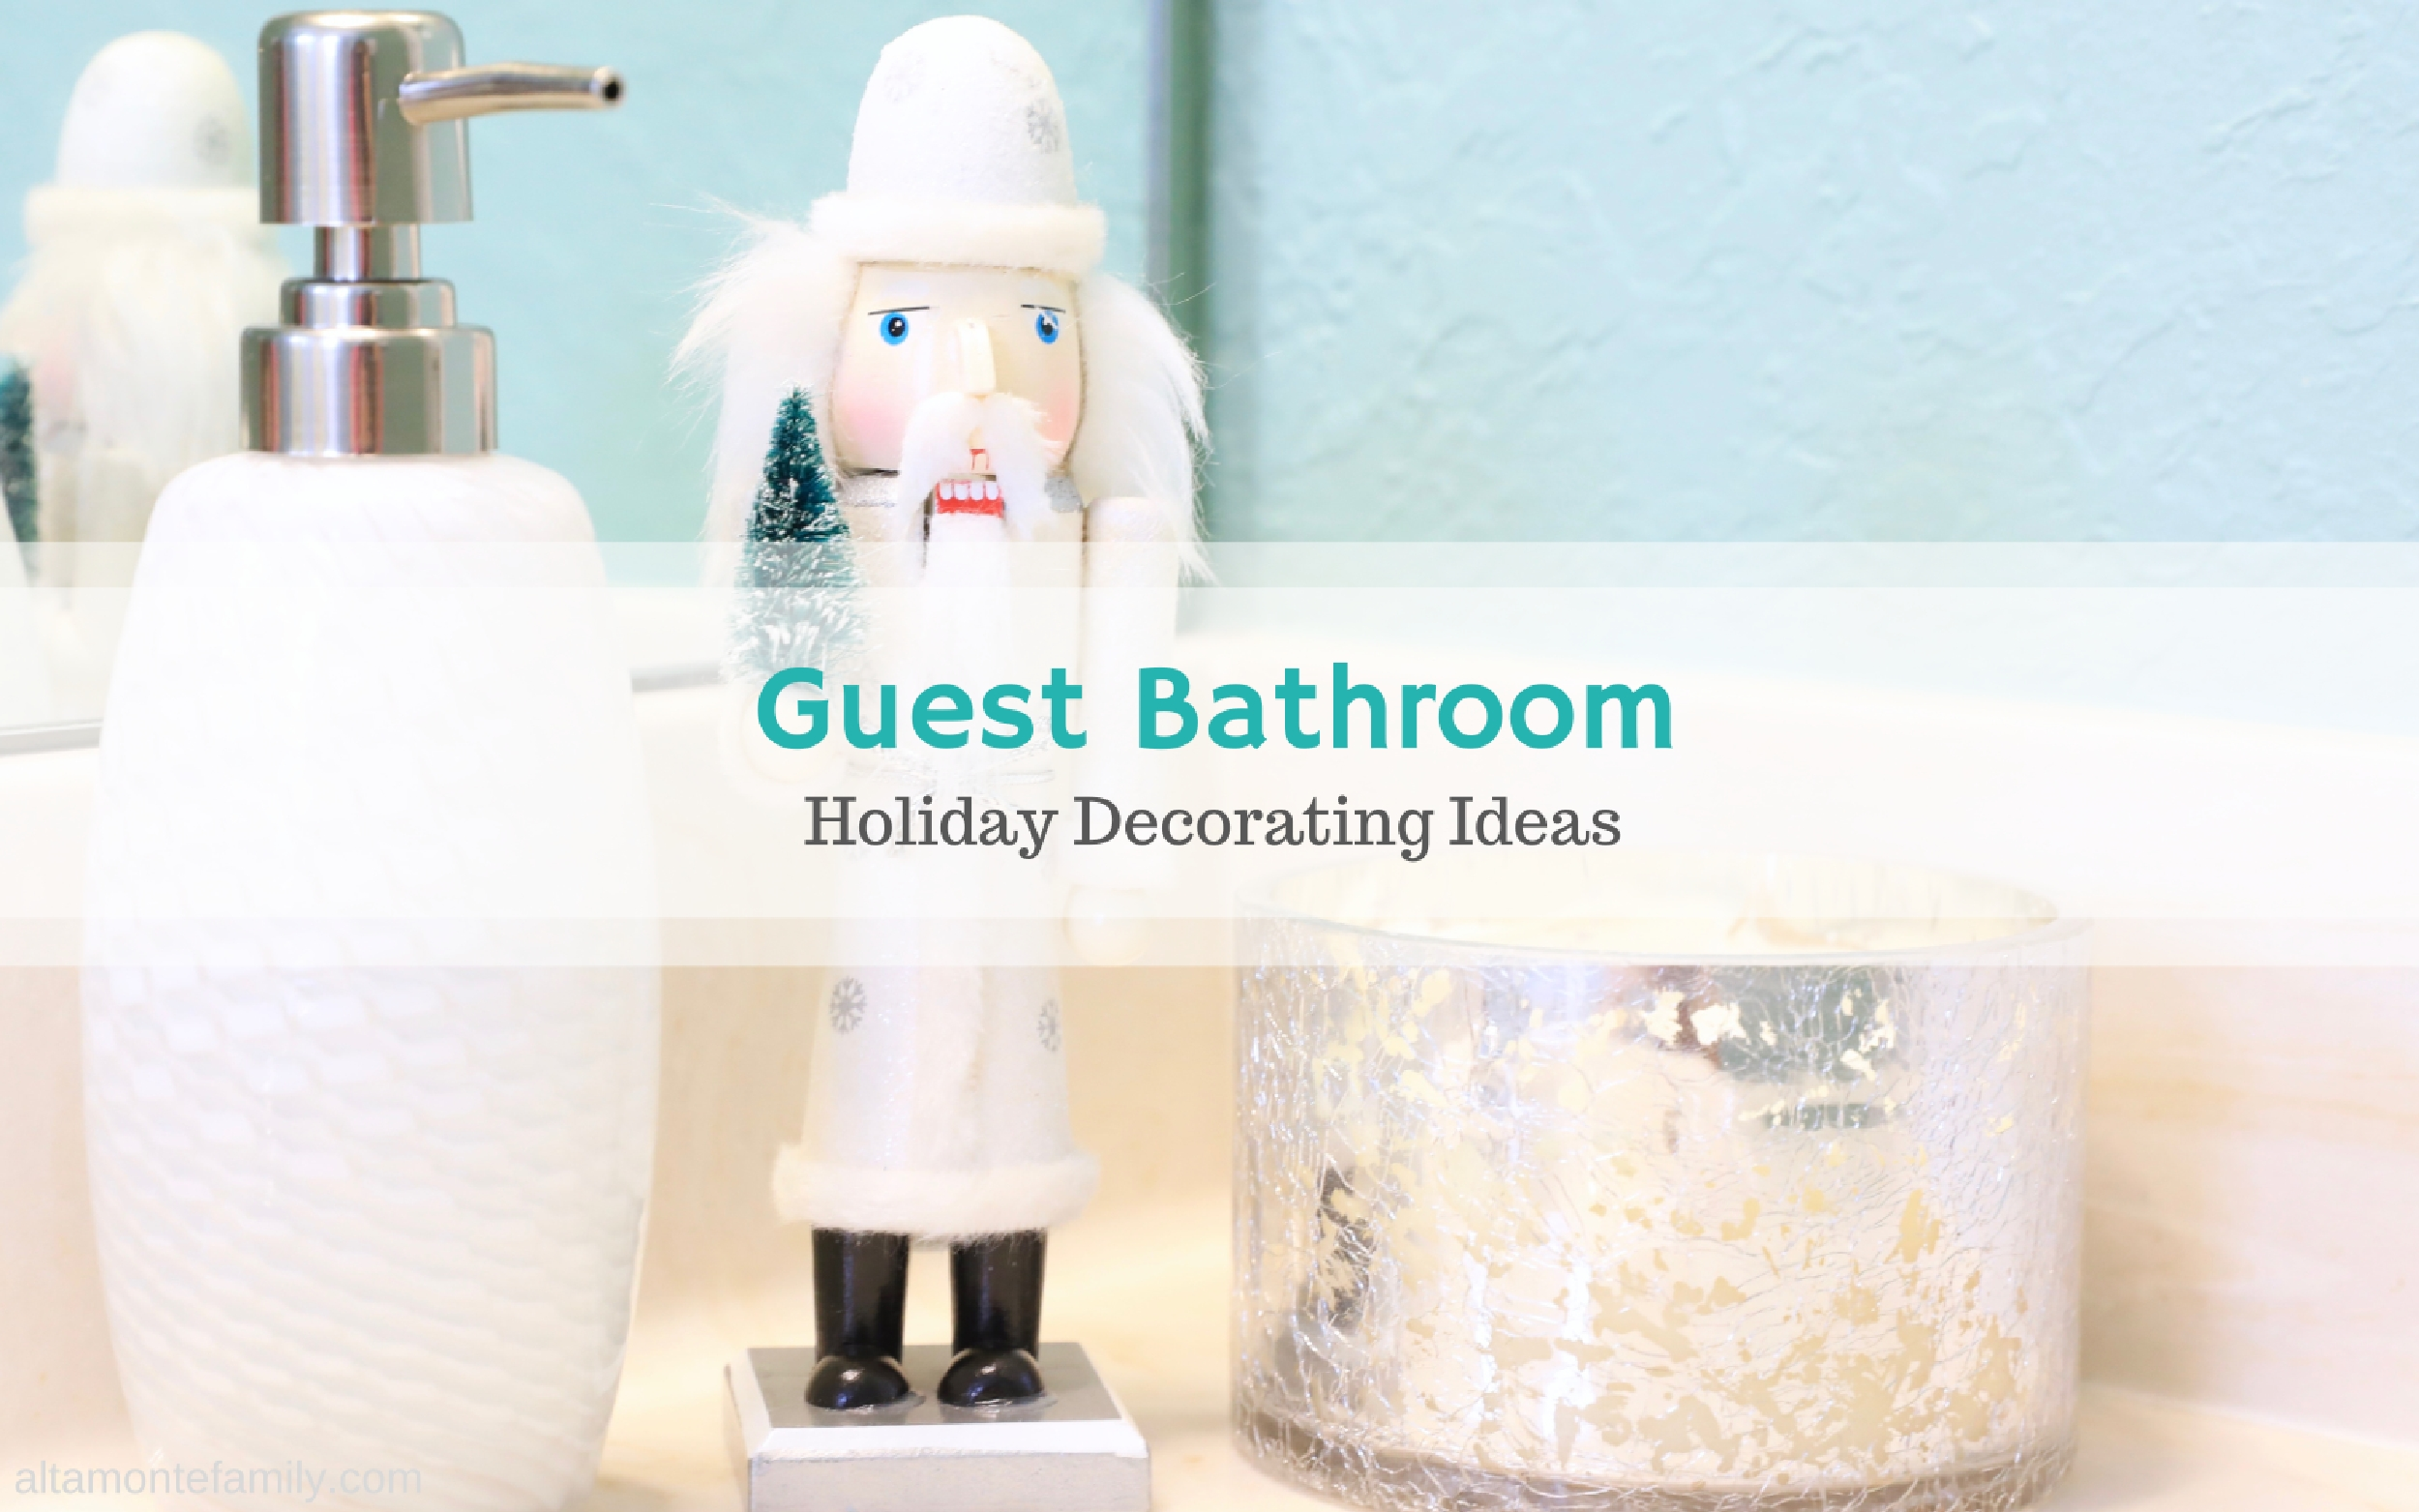 Fit Crafty Stylish And Happy Guest Bathroom Makeover: Brighten Up The Guest Bathroom For The Holidays